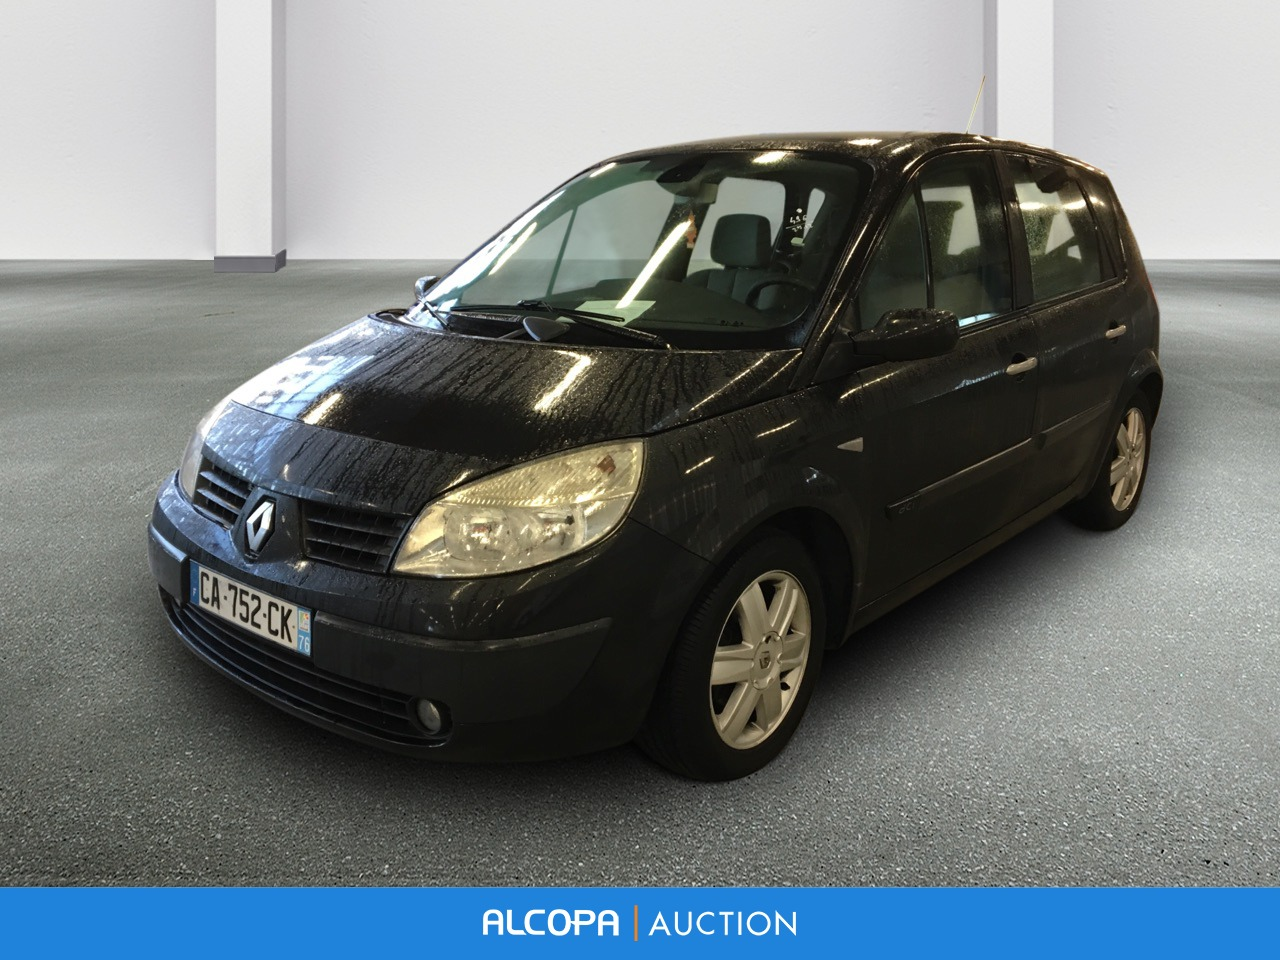 renault scenic ii scenic 1 5 dci 105 authentique alcopa auction. Black Bedroom Furniture Sets. Home Design Ideas